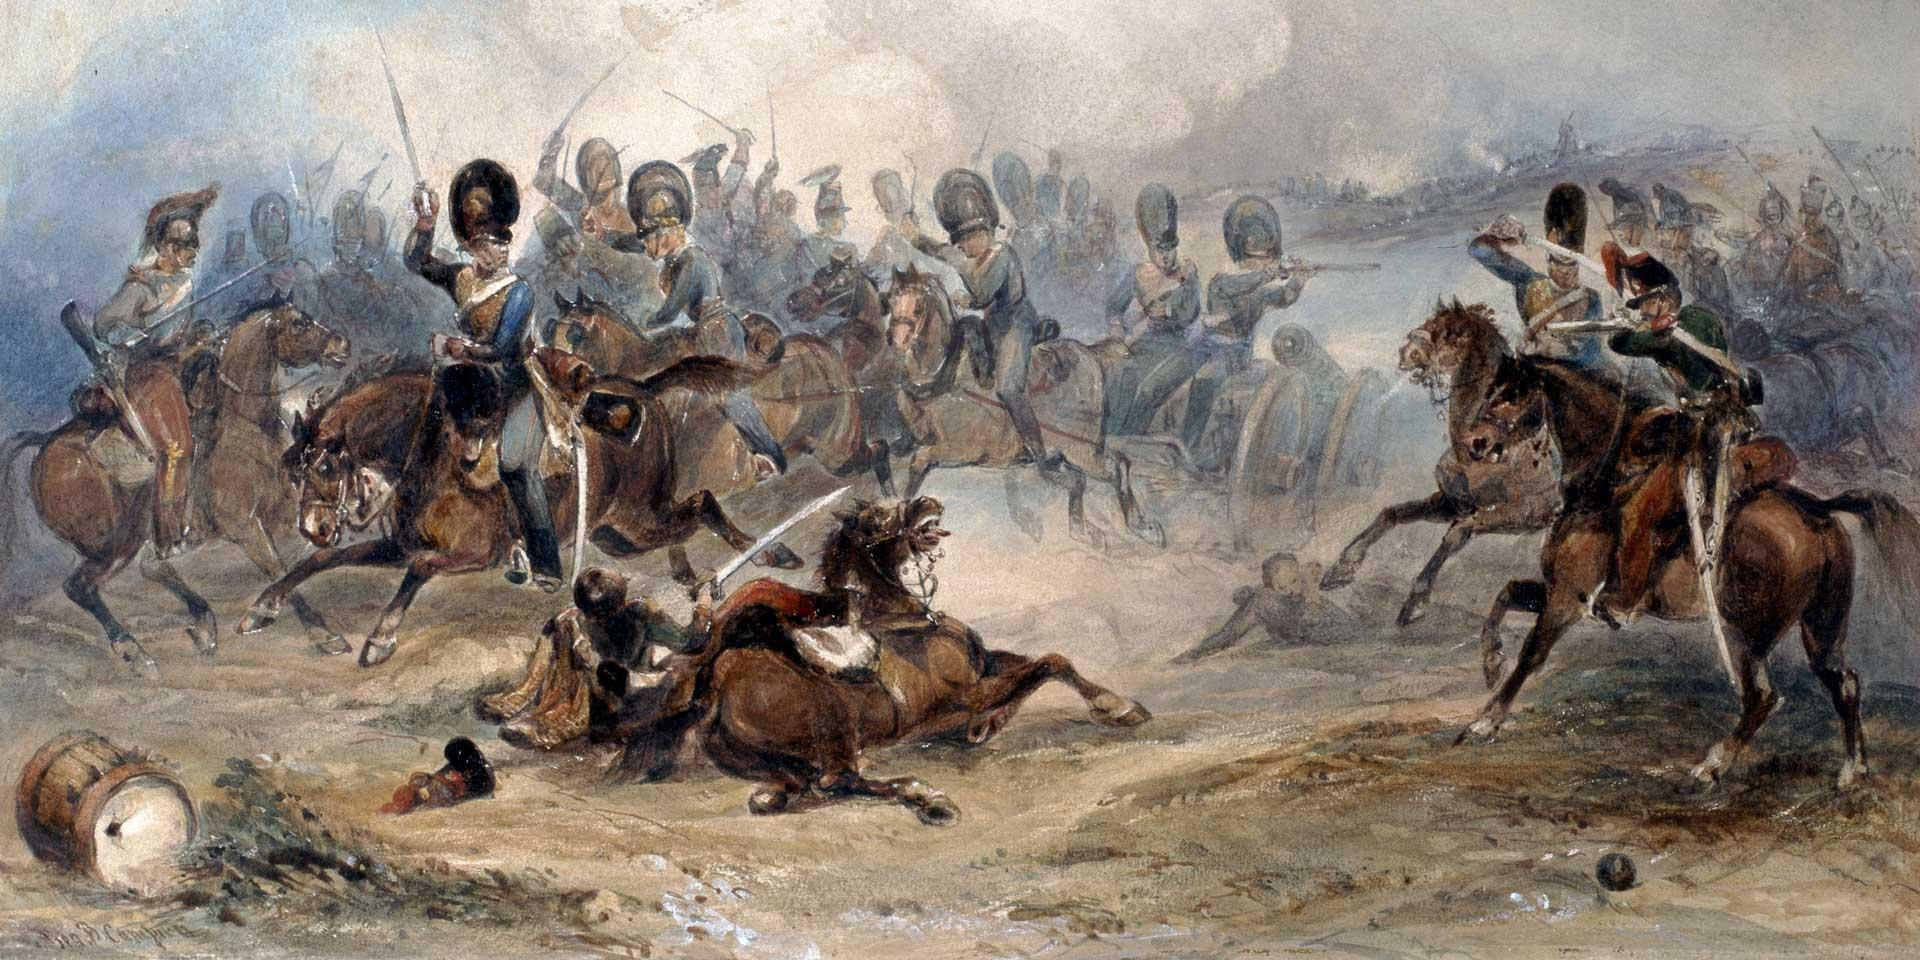 A Royal Horse Artillery troop at the Battle of Fuentes d'Onoro, 1811